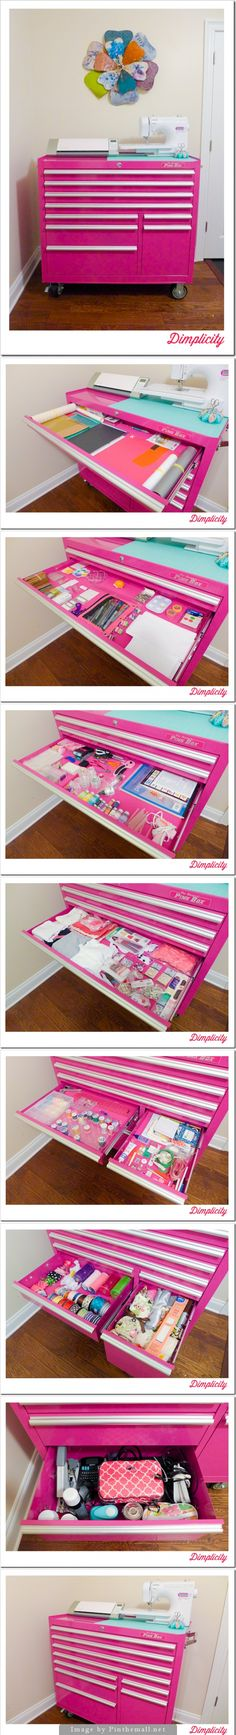 I love this craft storage idea from a toolbox. love the paint color. I love this craft storage idea from a toolbox. love the paint color. this would be great for stamping supplies. - Crafting Is My Life. New Crafts, Home Crafts, Sewing Crafts, Craft Room Storage, Craft Organization, Storage Ideas, Craft Rooms, Organizing Ideas, Tool Storage